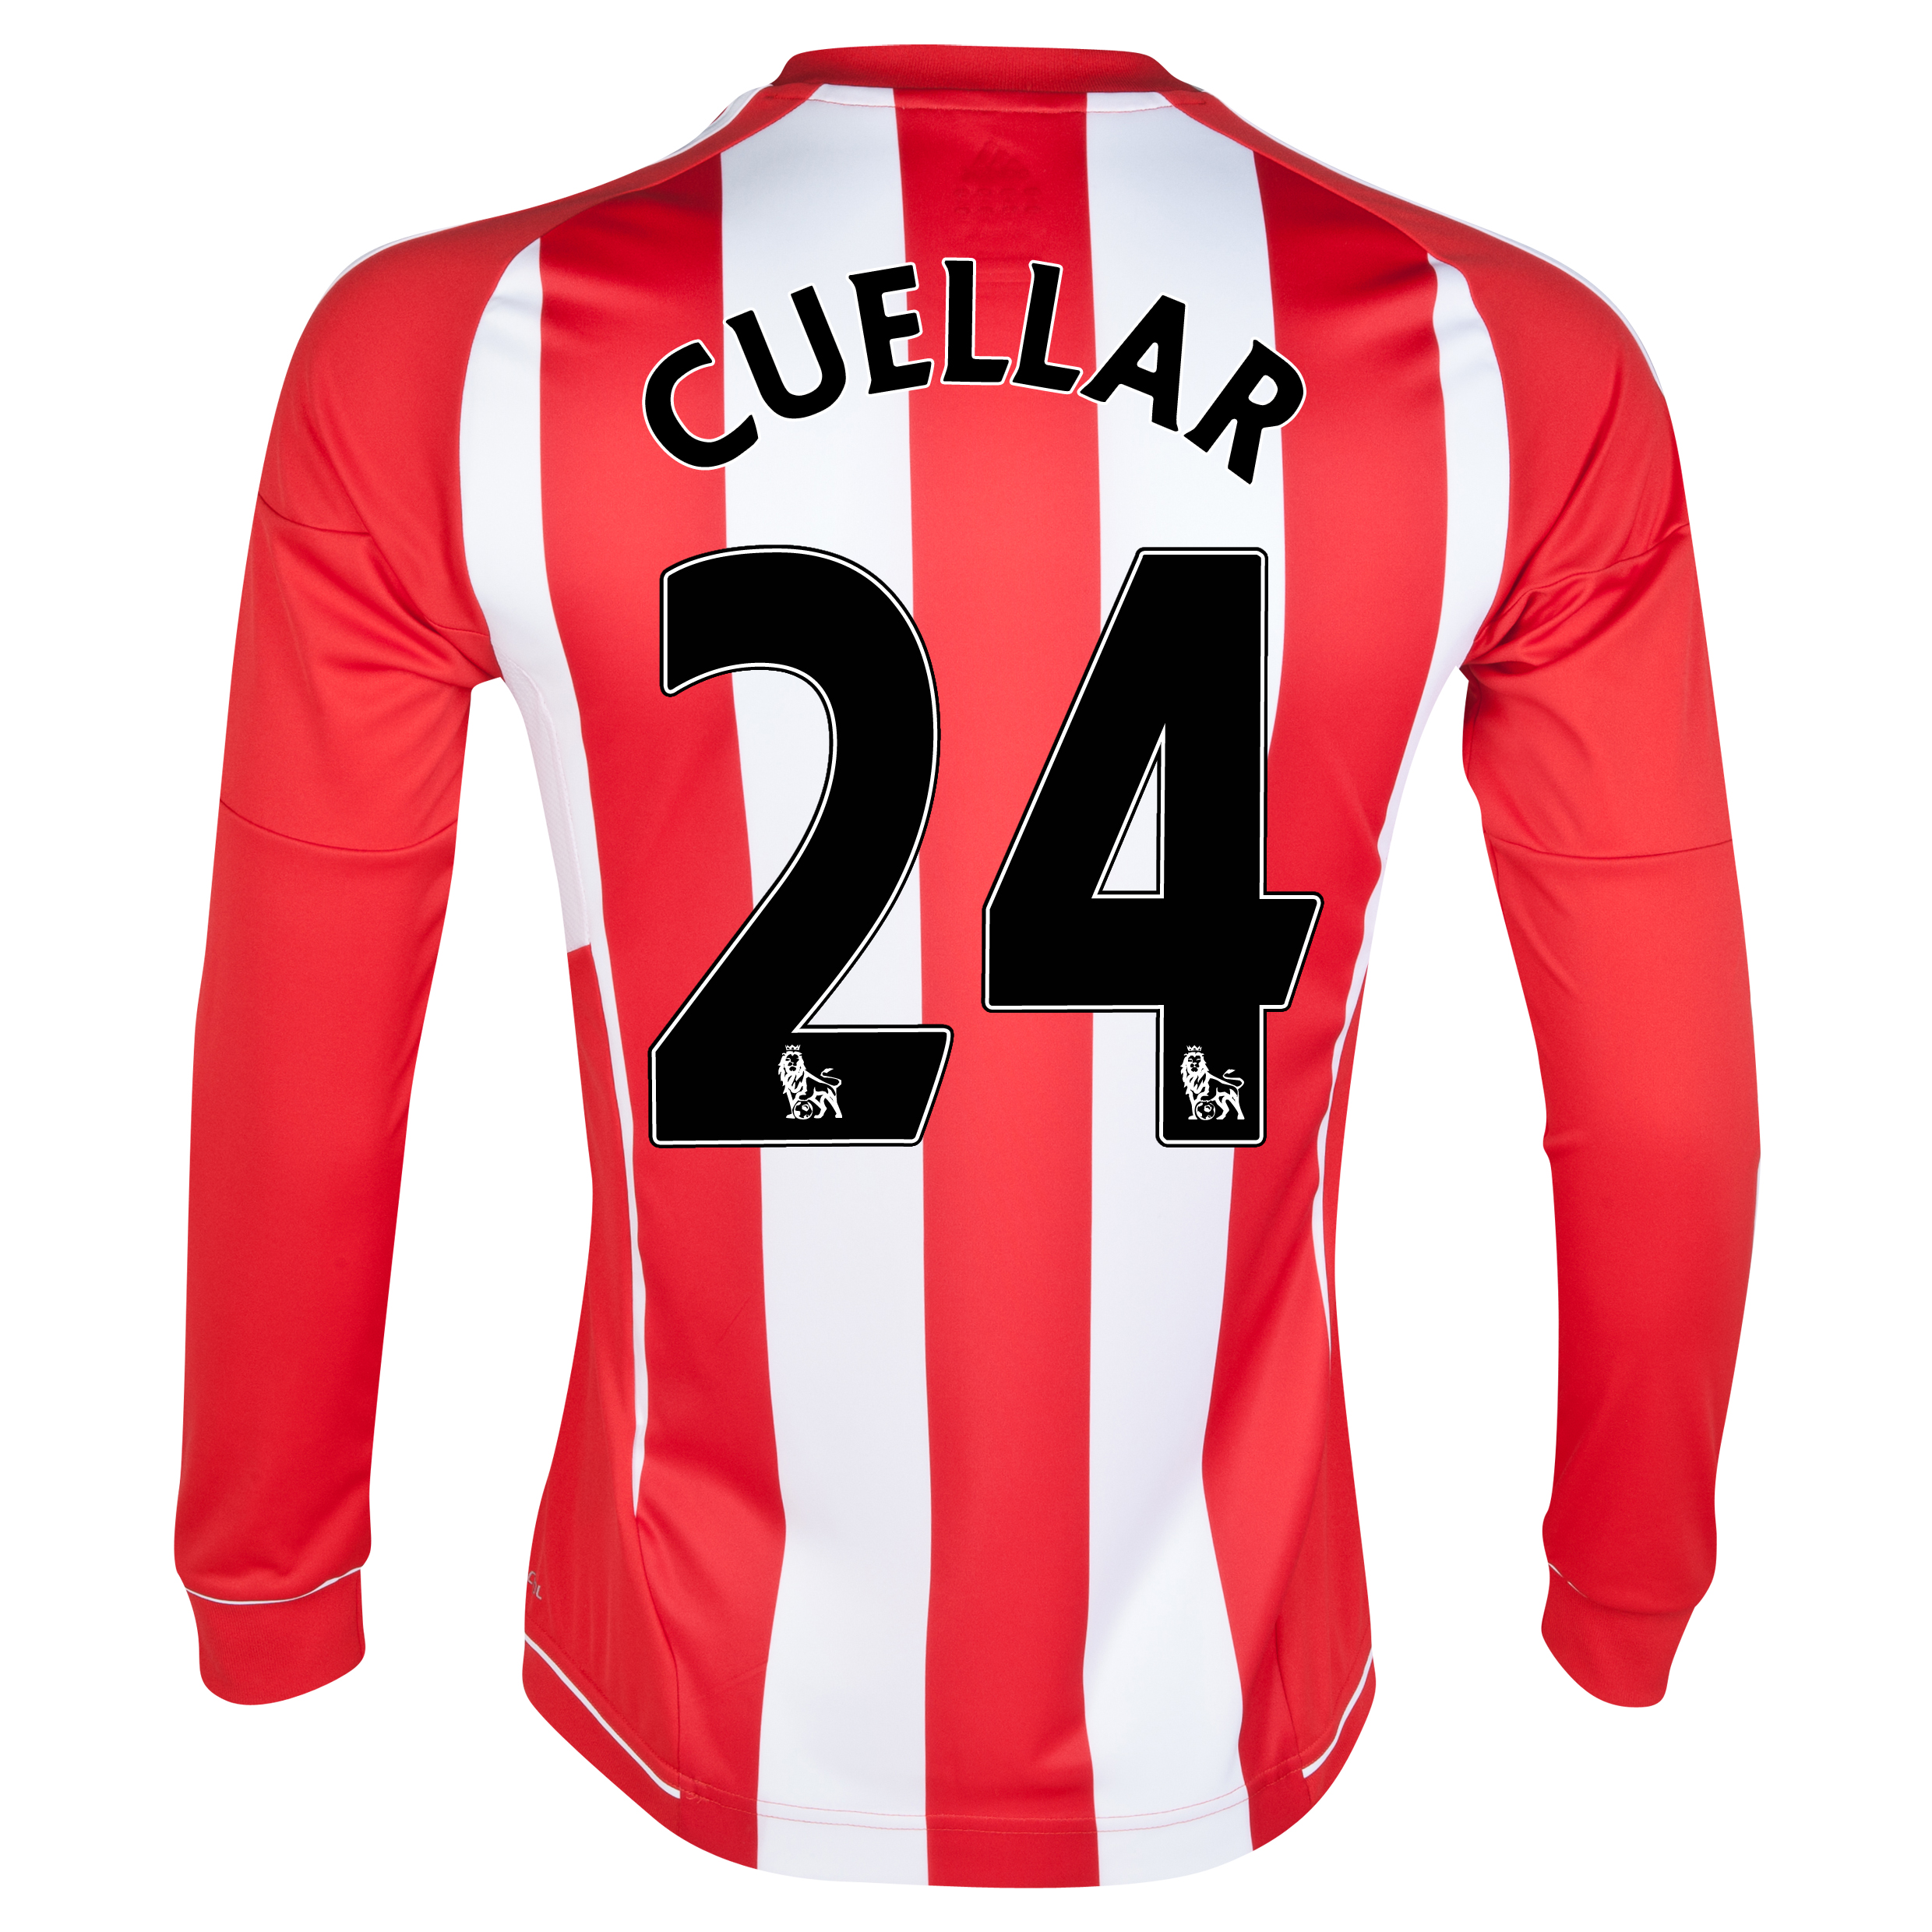 Sunderland Home Shirt 2012/13 - Long Sleeved with Cuellar 24 printing